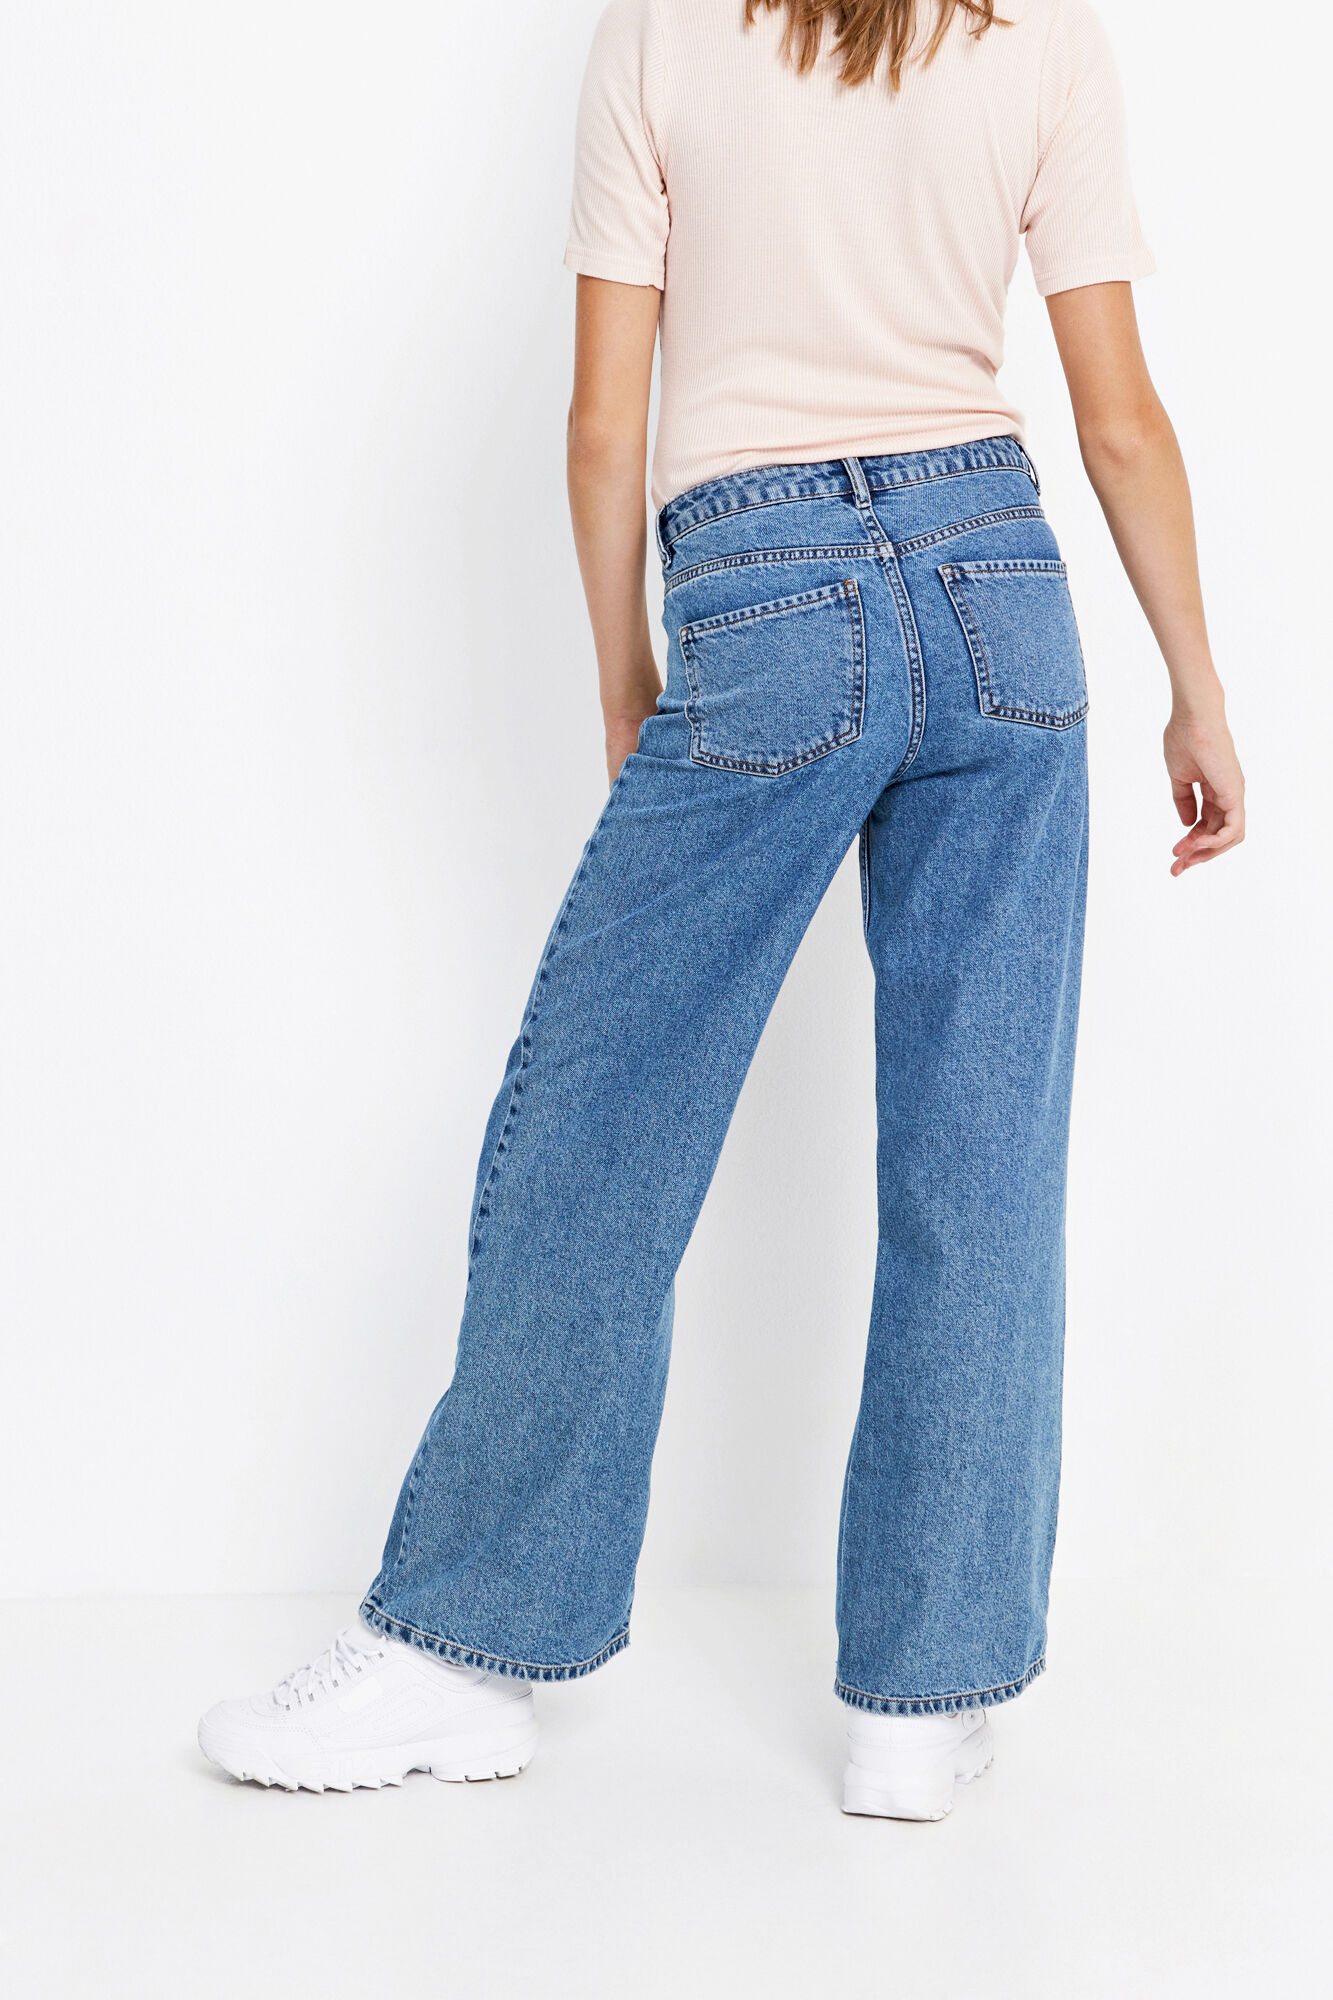 ENSEVILLA JEANS 6592